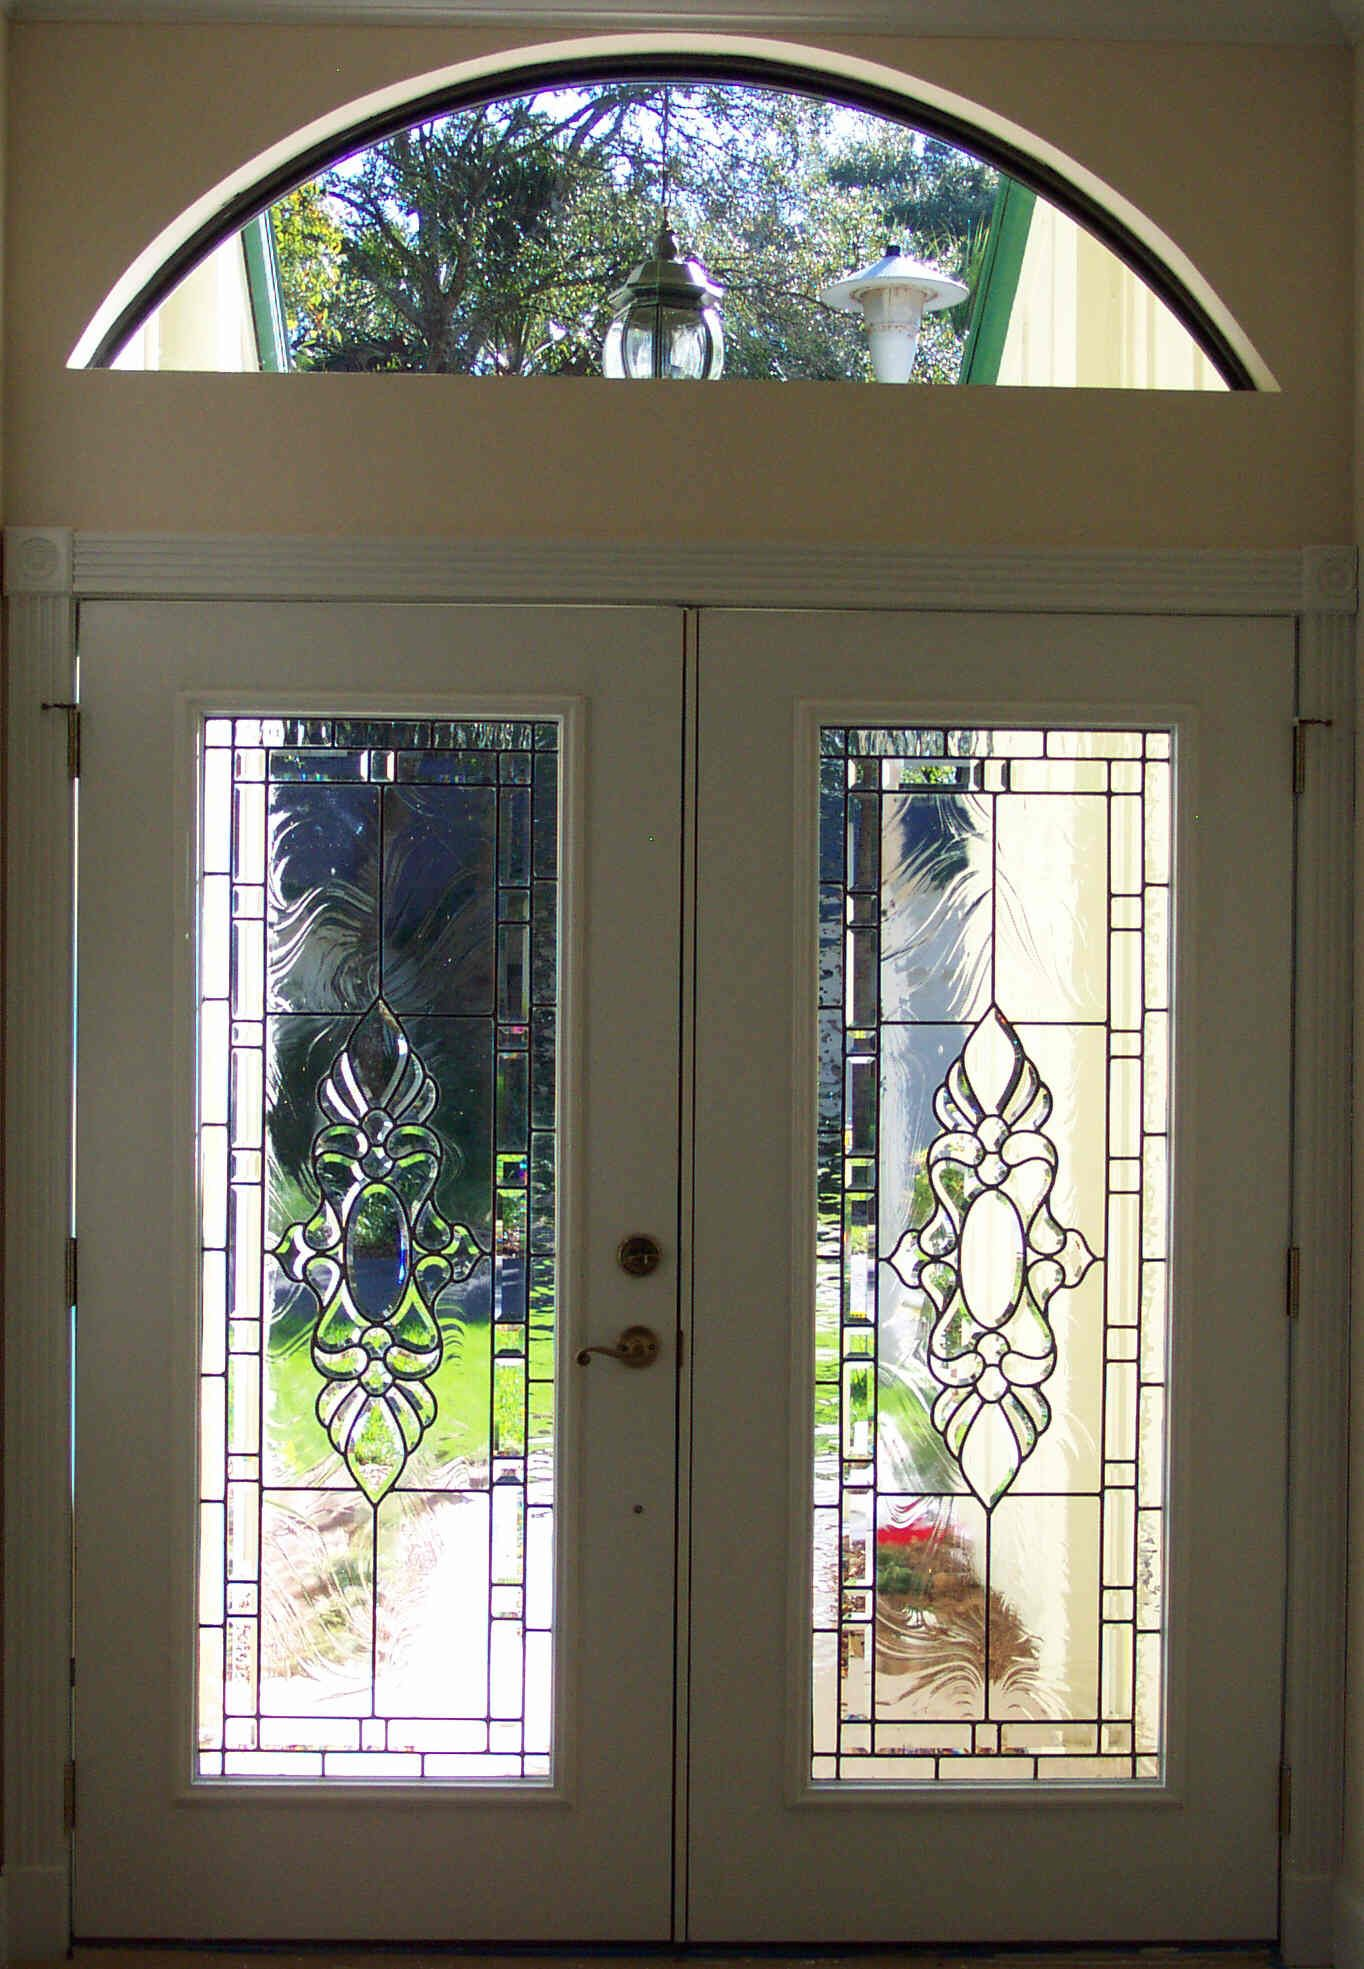 Etched glass doors privacy glass door inserts bamboo pictures to pin - Custom Beveled Glass Door Inserts For Front Entry Created By Designer Art Glass Daytona Beach